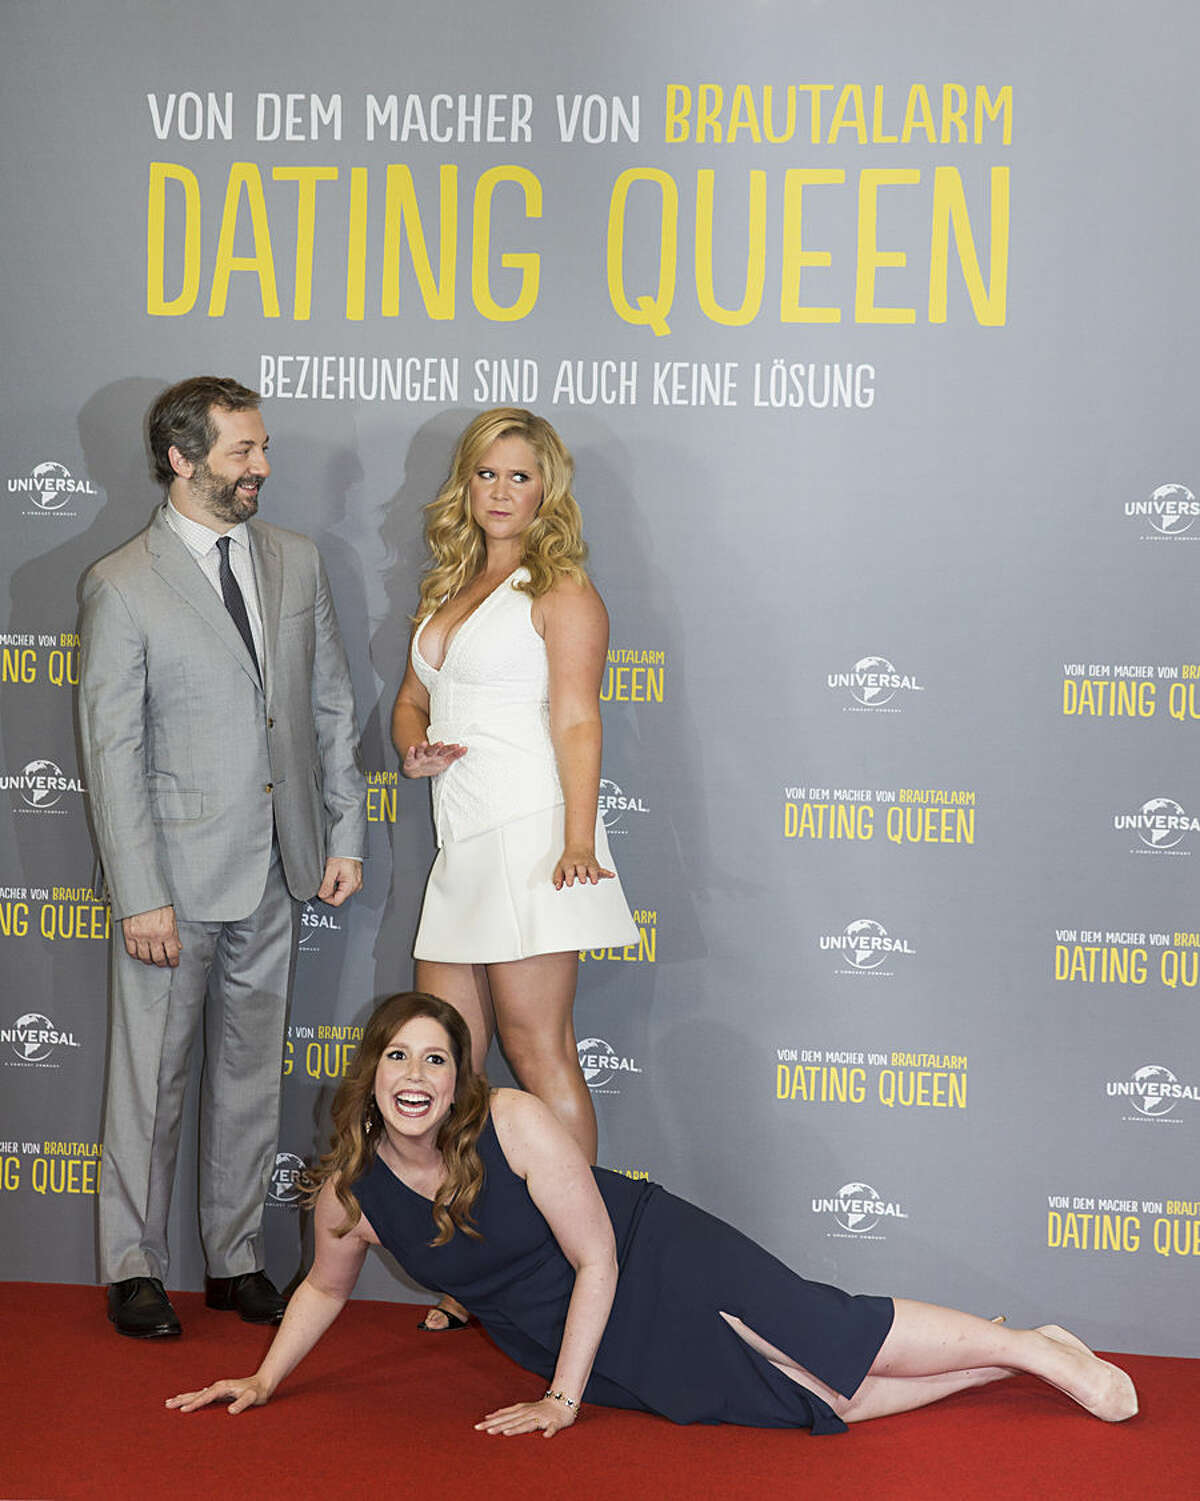 US actress Vanessa Bayer jokingly lies down in front of US actress Amy Schumer, right, and US director Judd Apatow, left, during a photo call for the movie